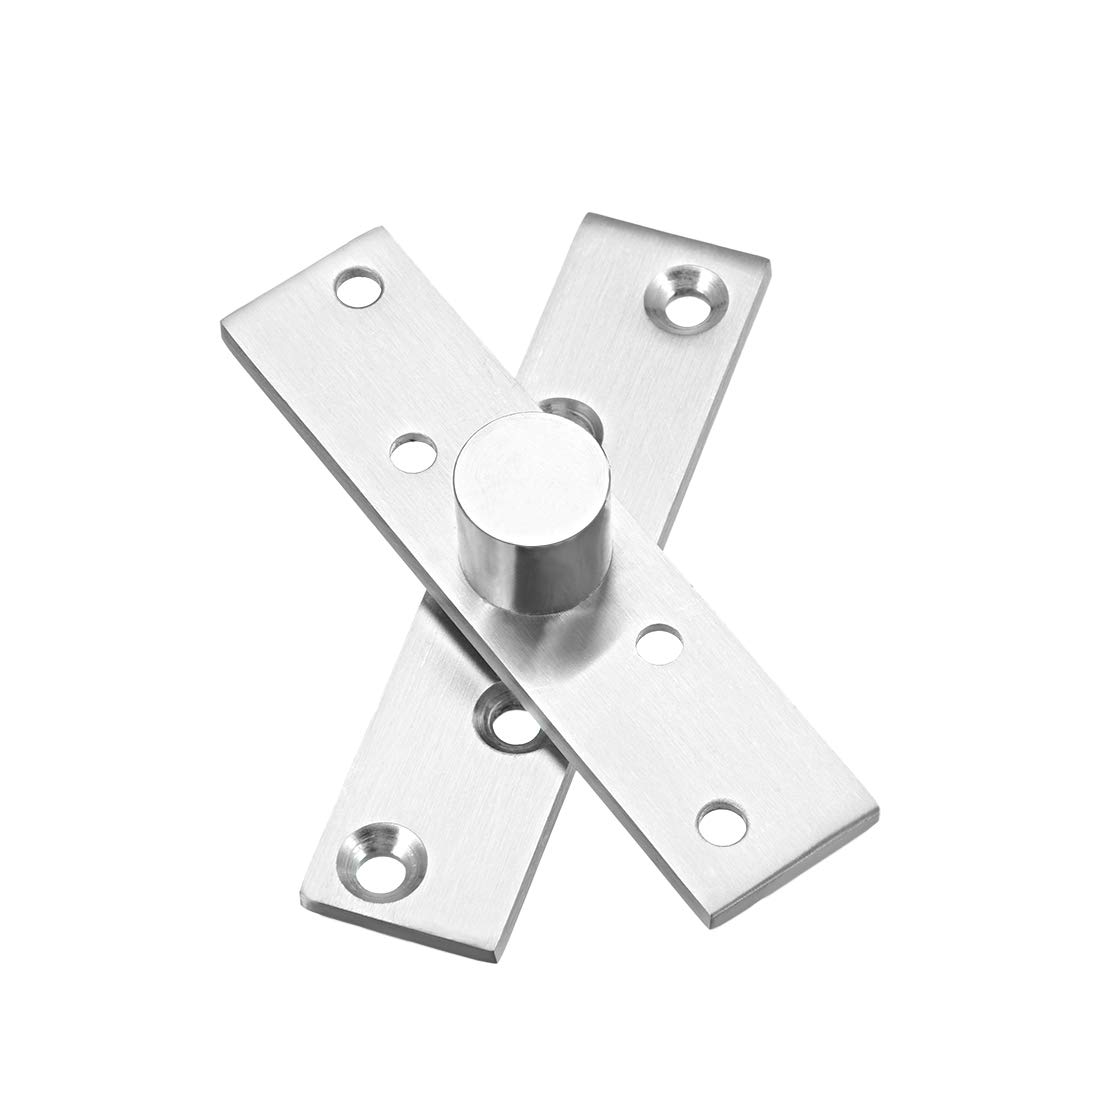 uxcell 4 Sets Stainless Steel 360 Degree Door Pivot Hinge 100 x 24mm